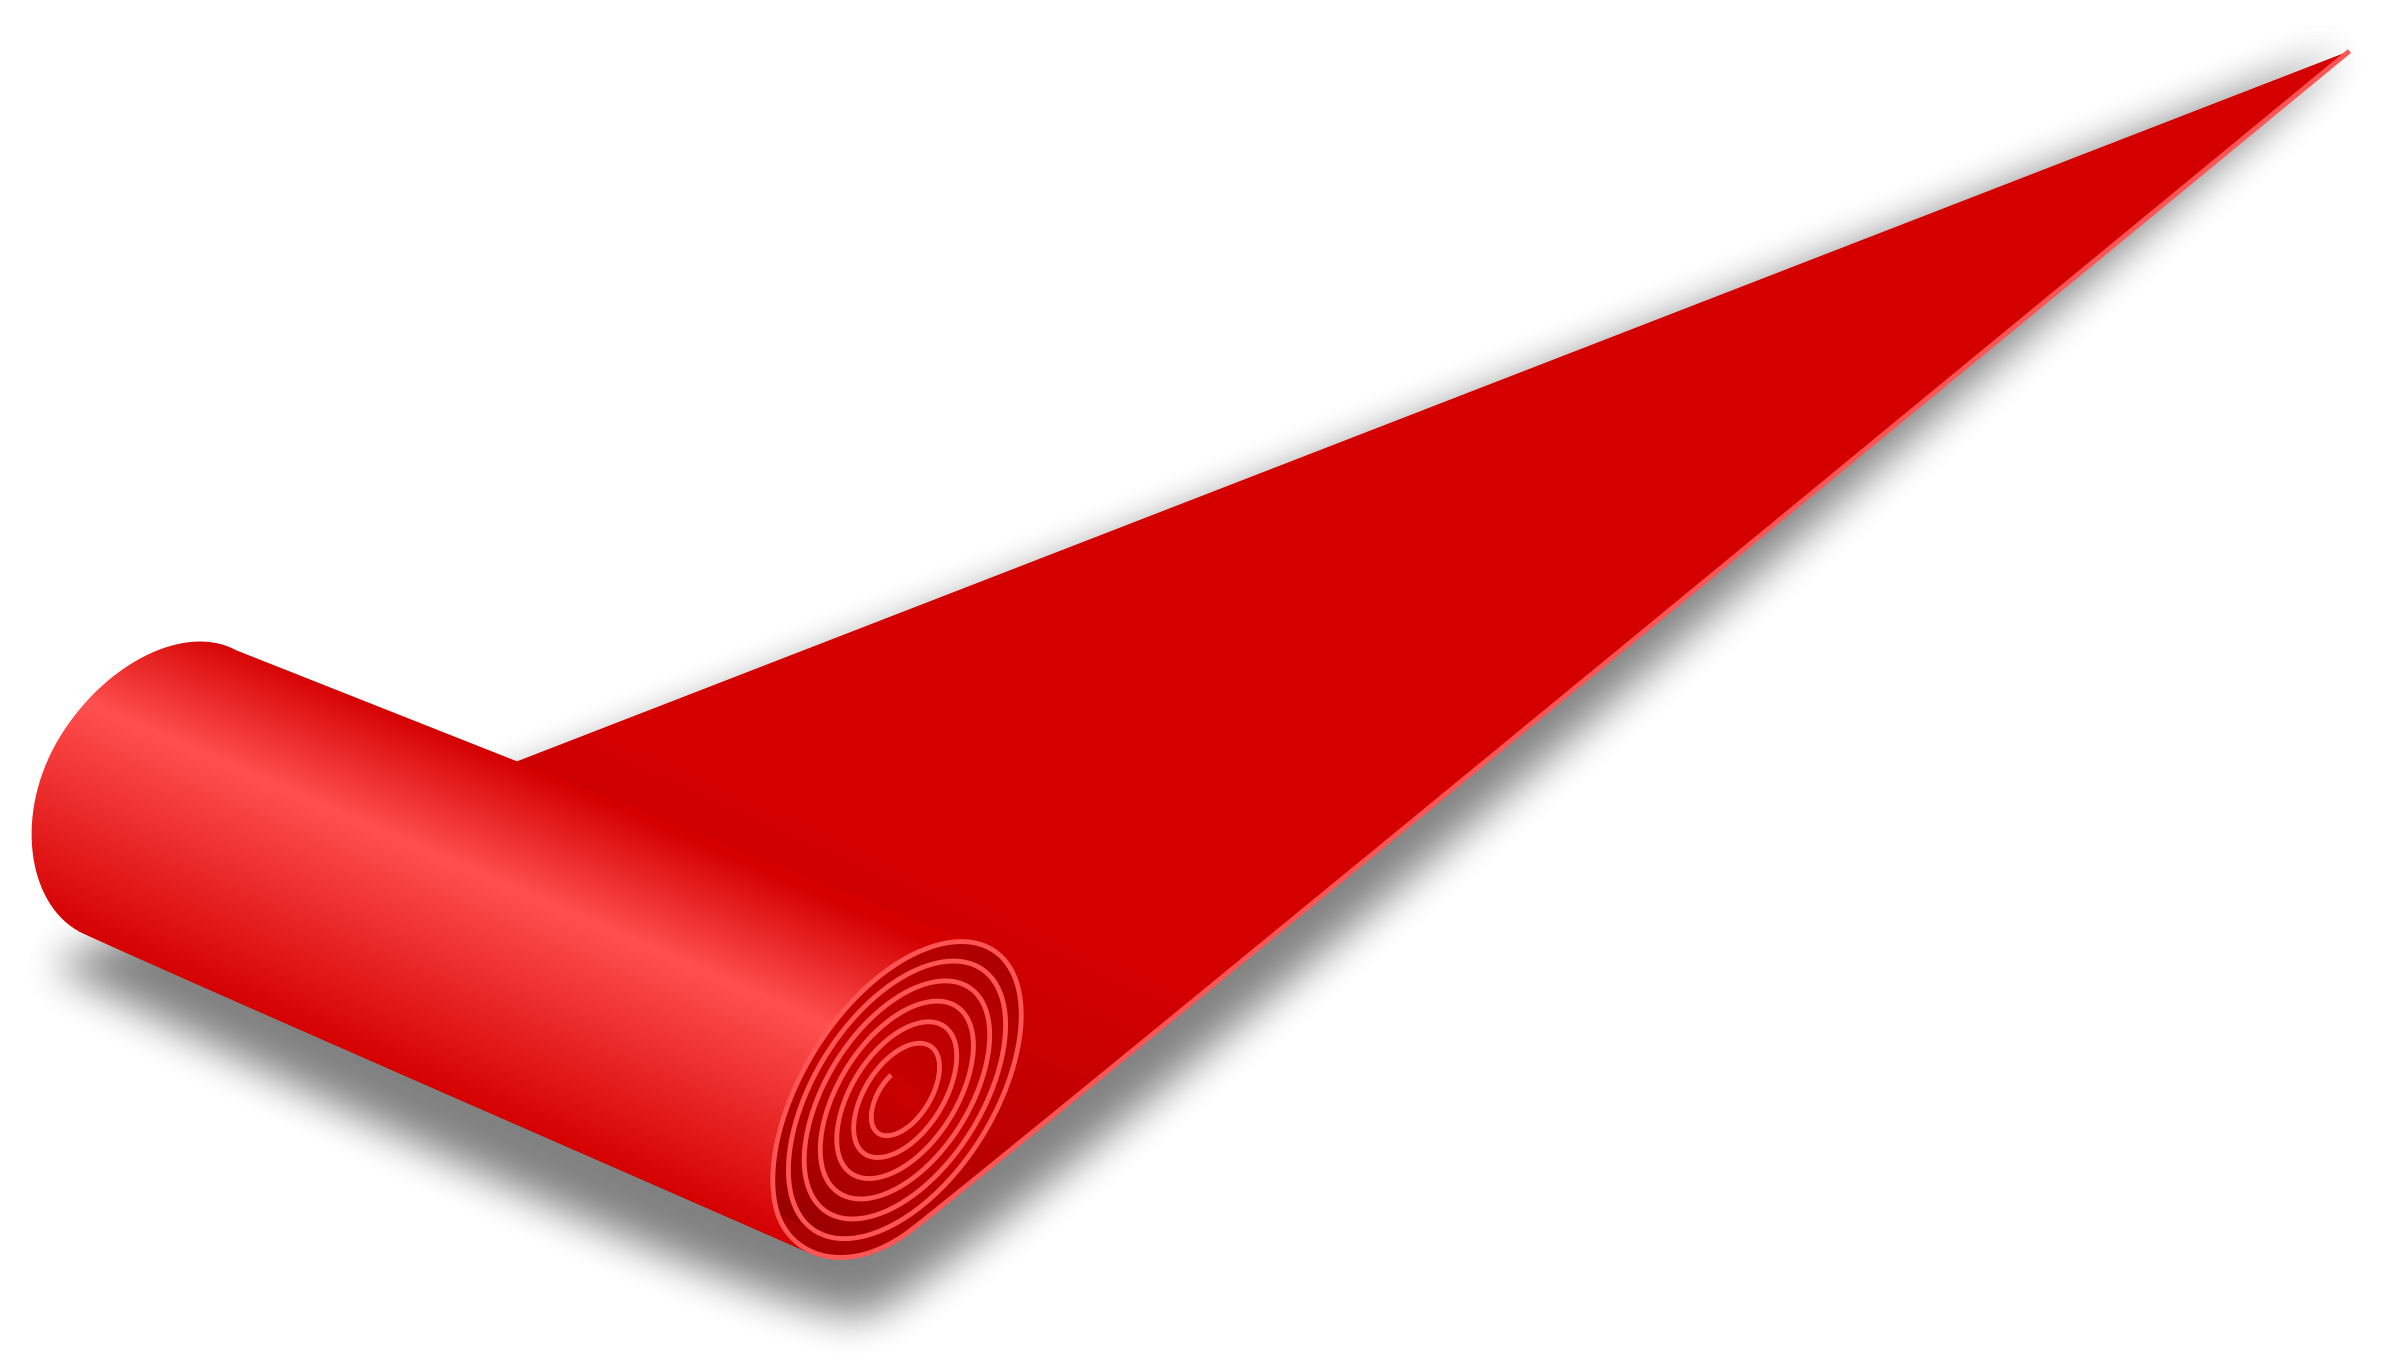 Staircase clipart red stair. Carpet stairs png transparentpng